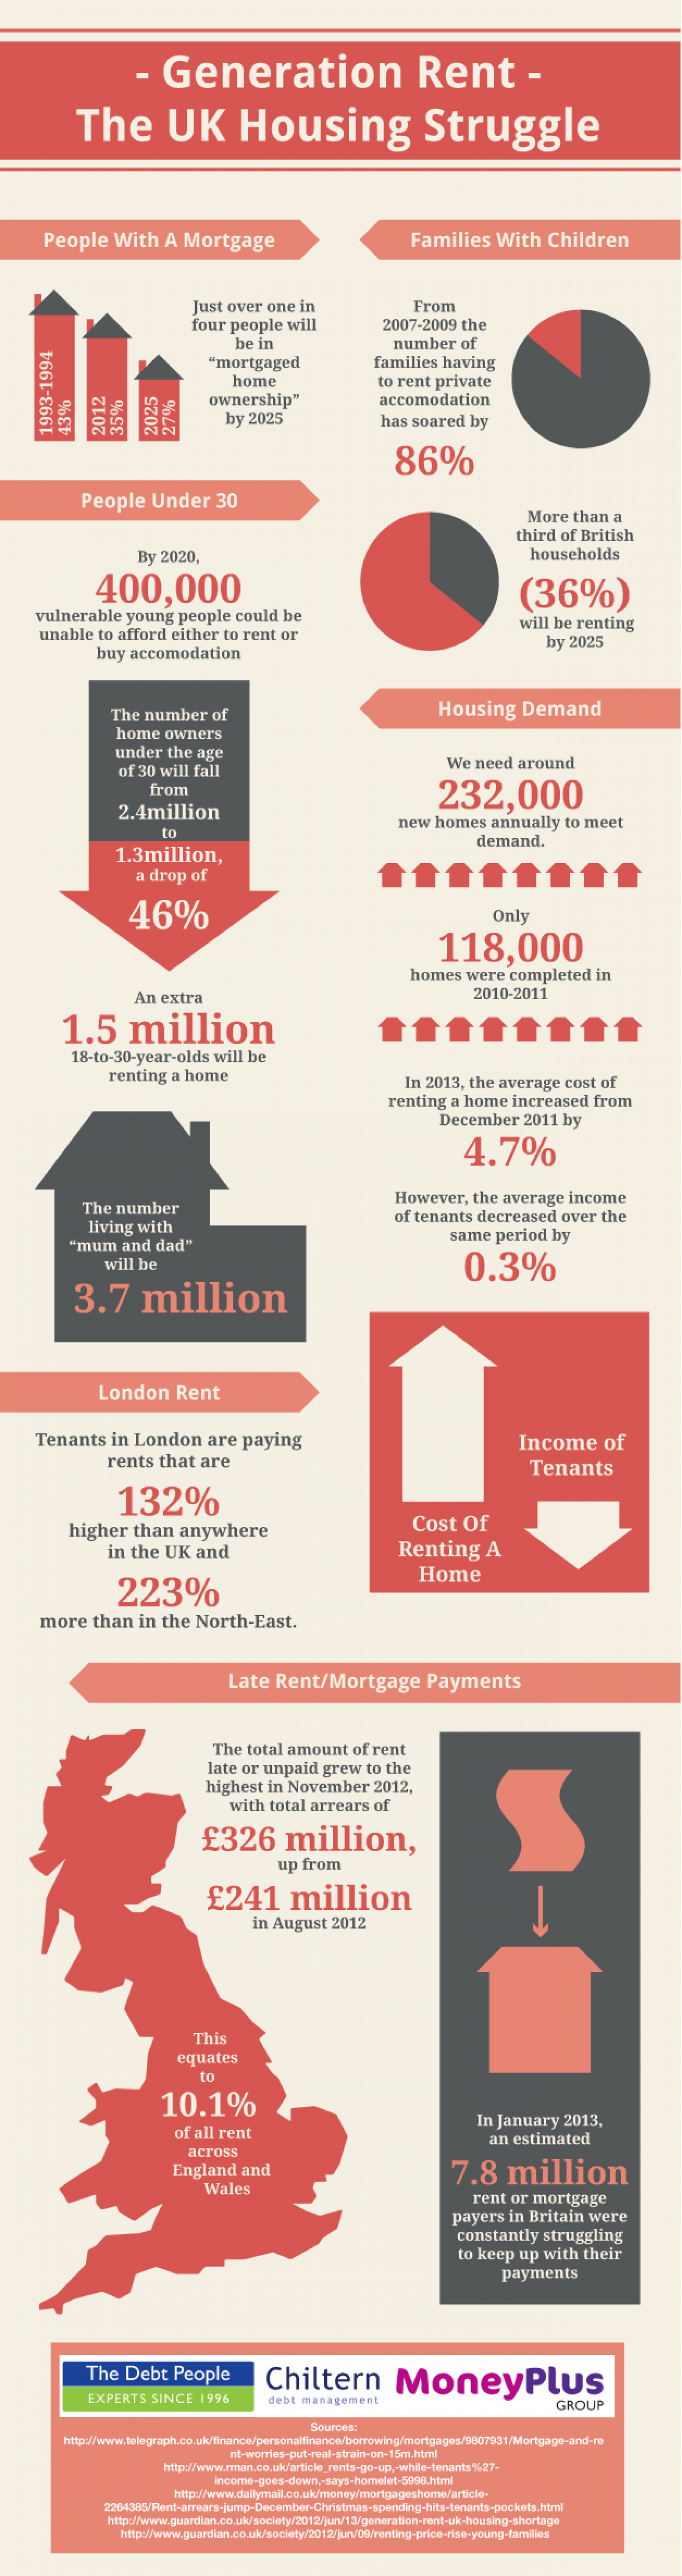 Generation Rent - The UK Housing Struggle Infographic